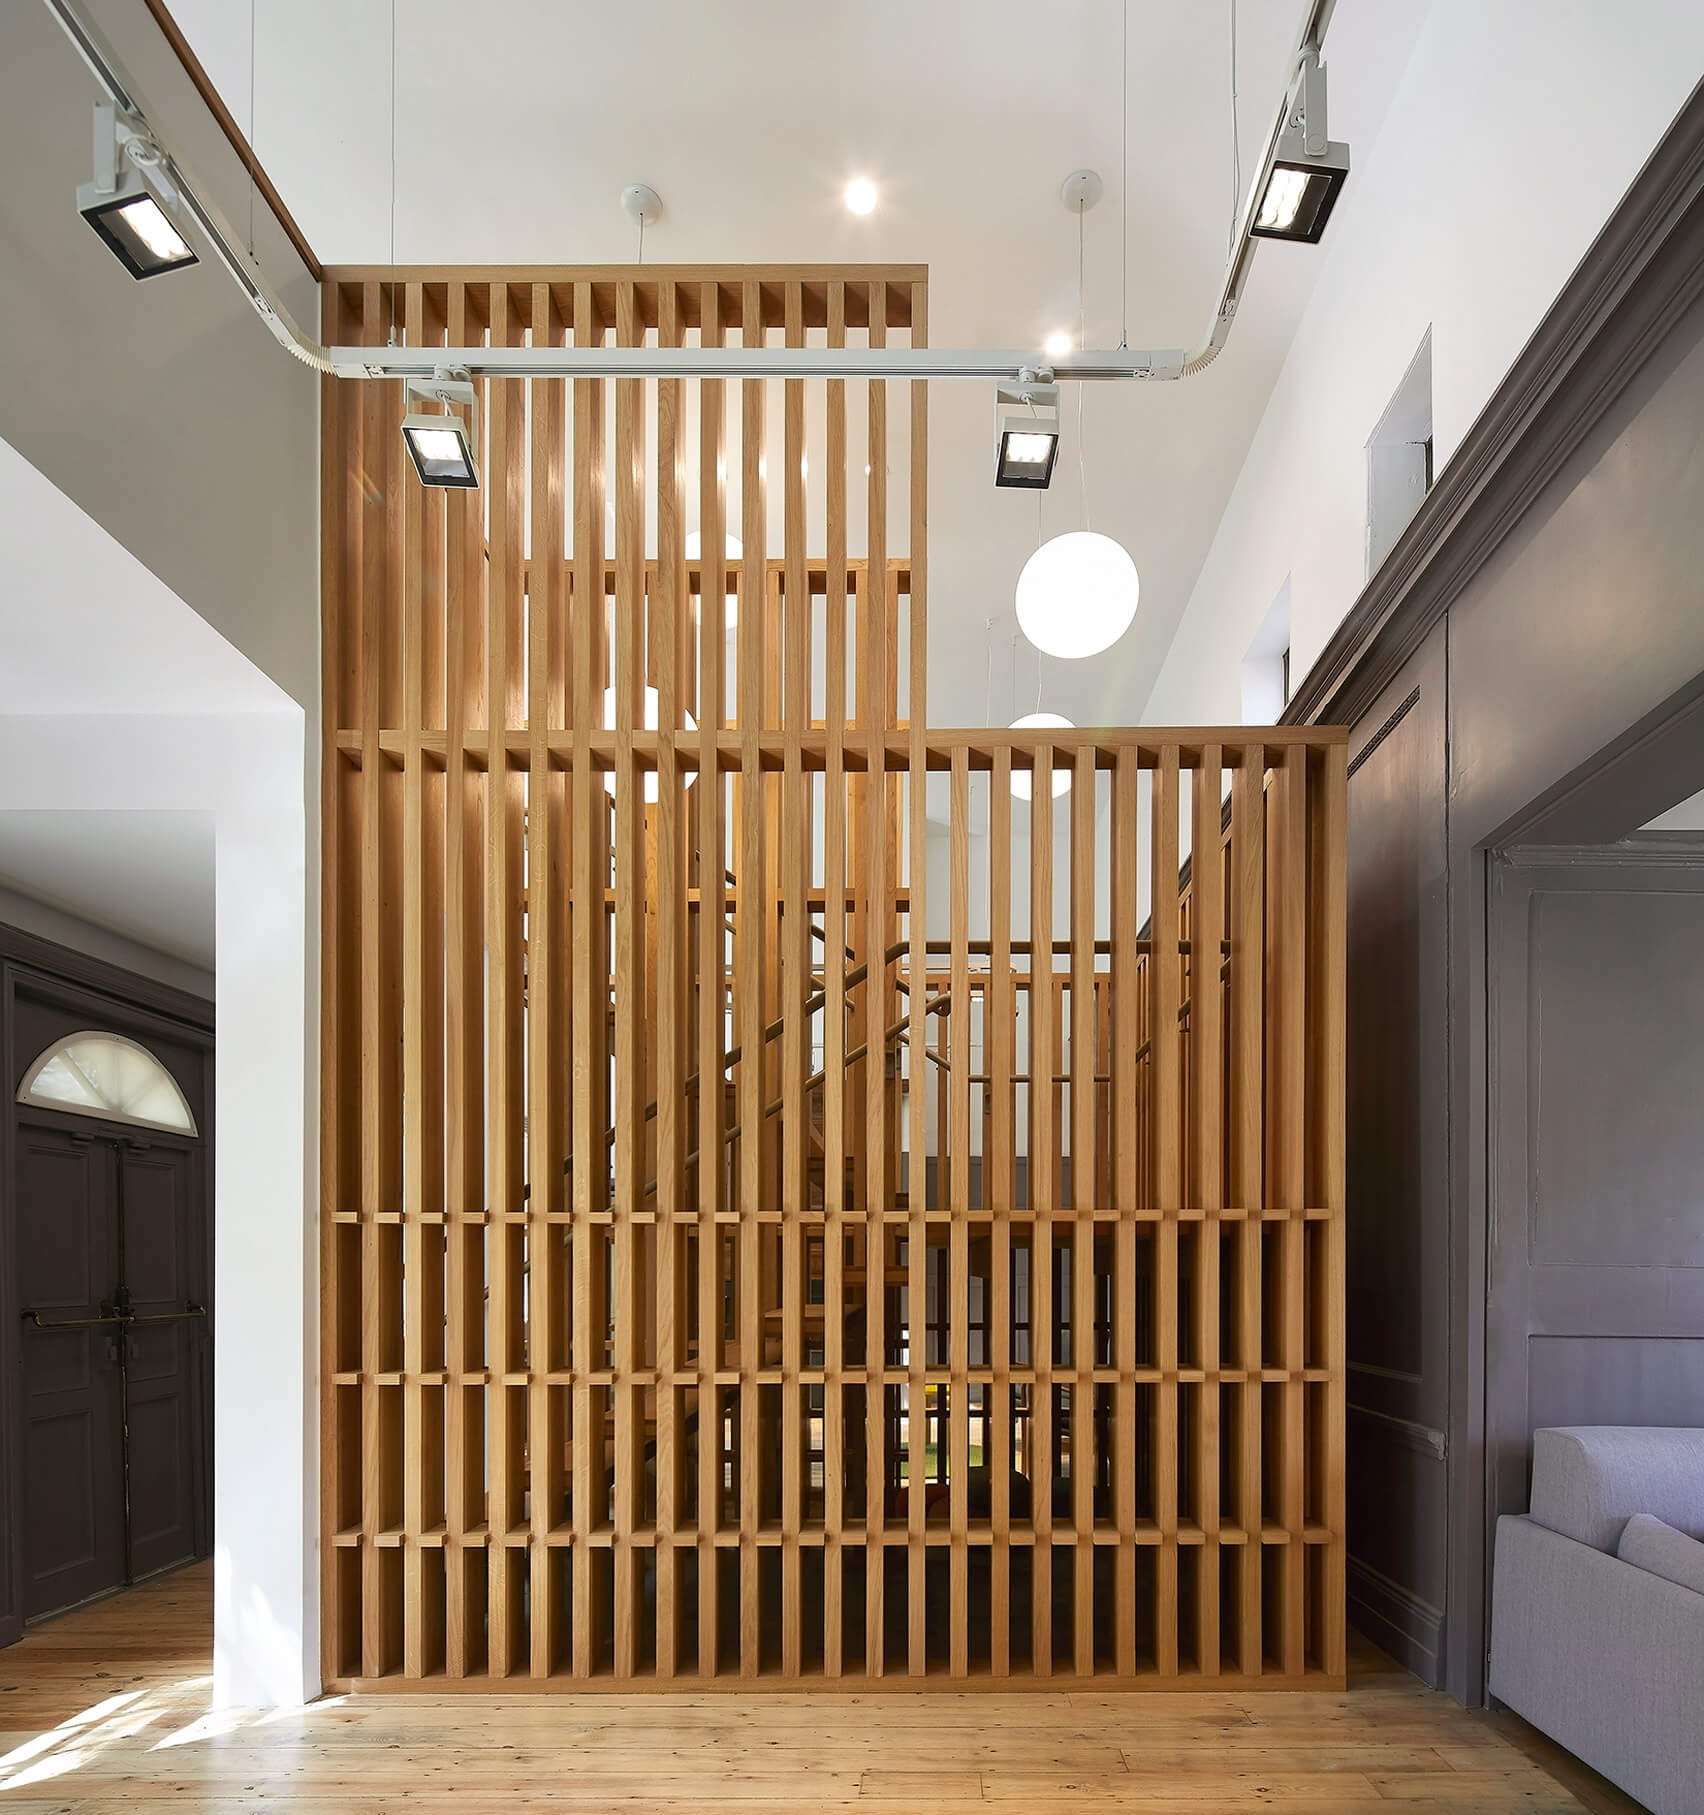 museum of the home wright wright london architecture renovations dezeen 1704 col 5